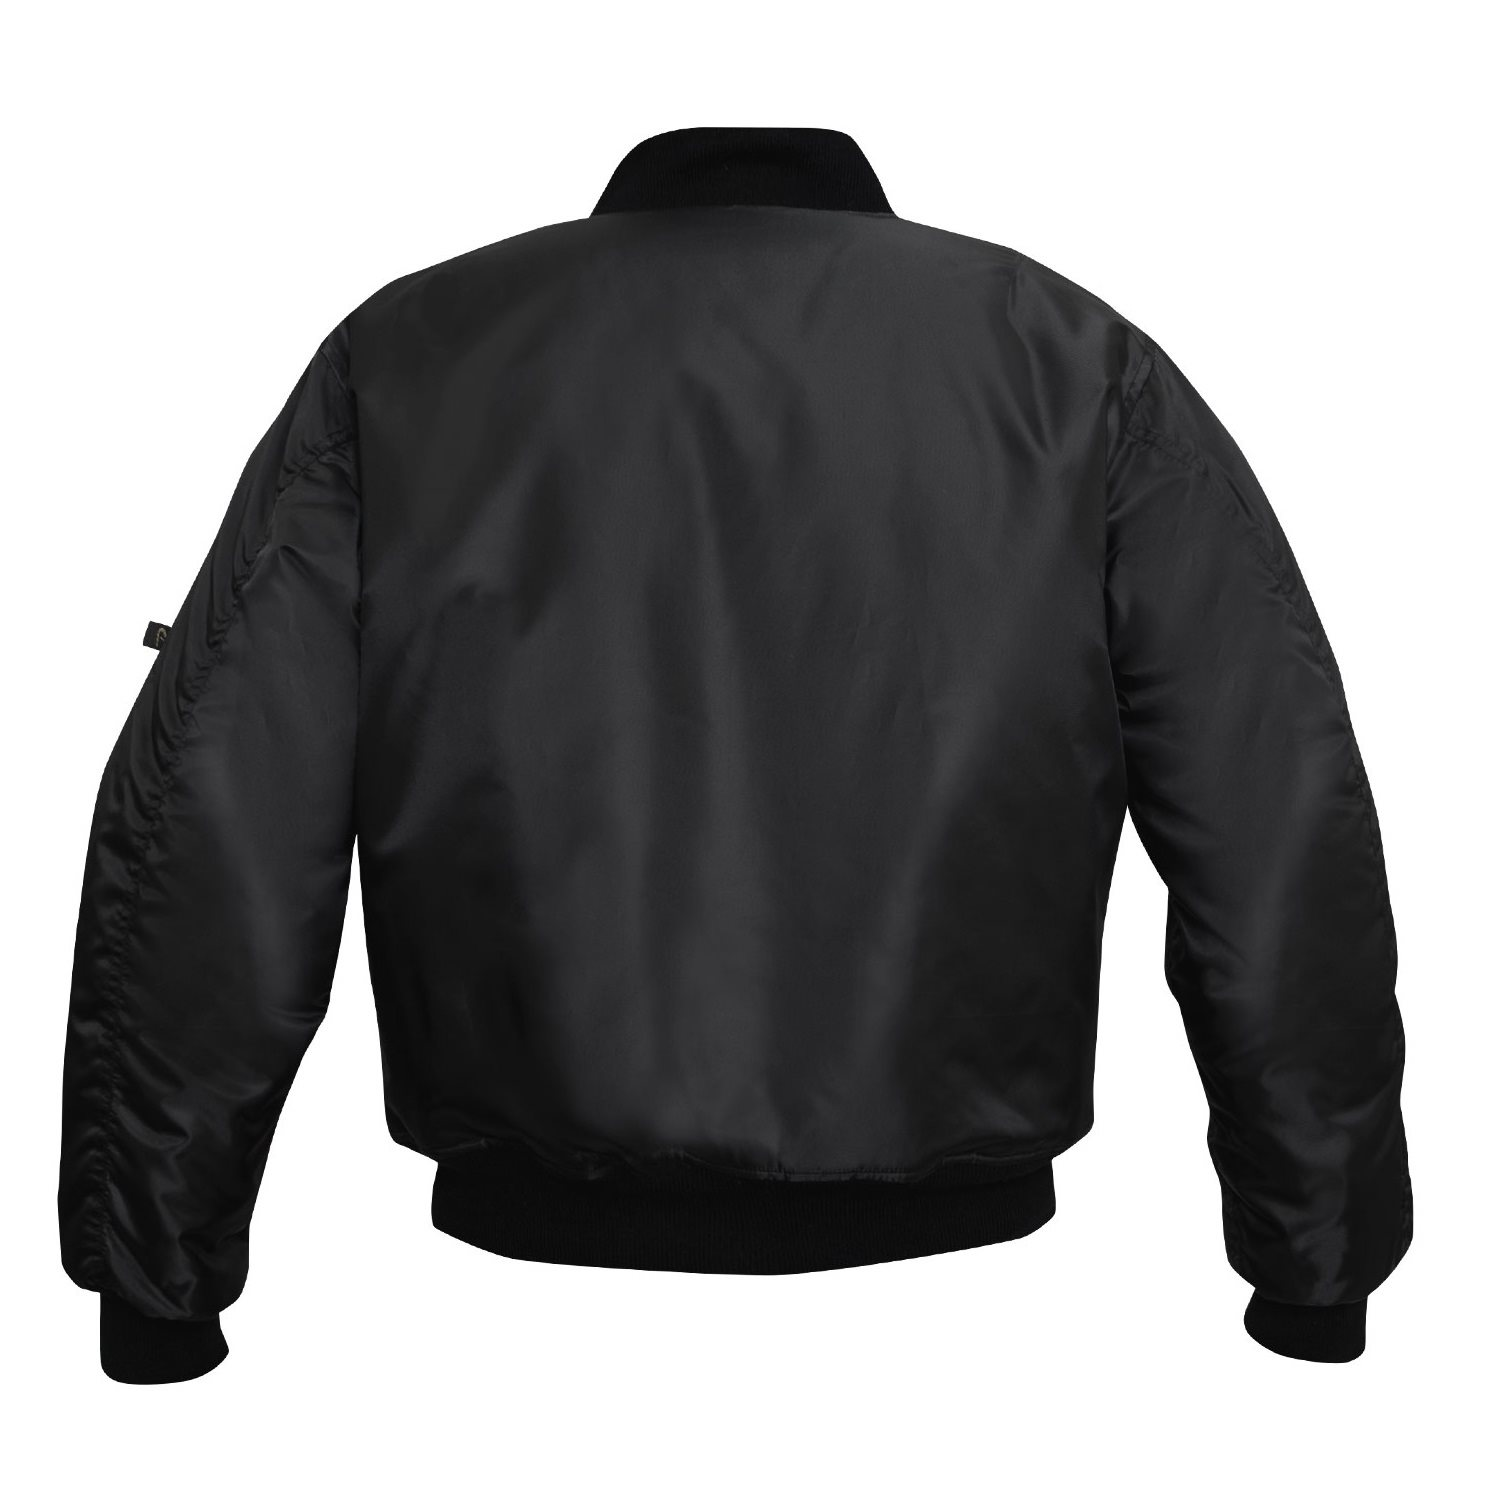 Jacket NASA MA-1 Flight BLACK ROTHCO 7328 L-11